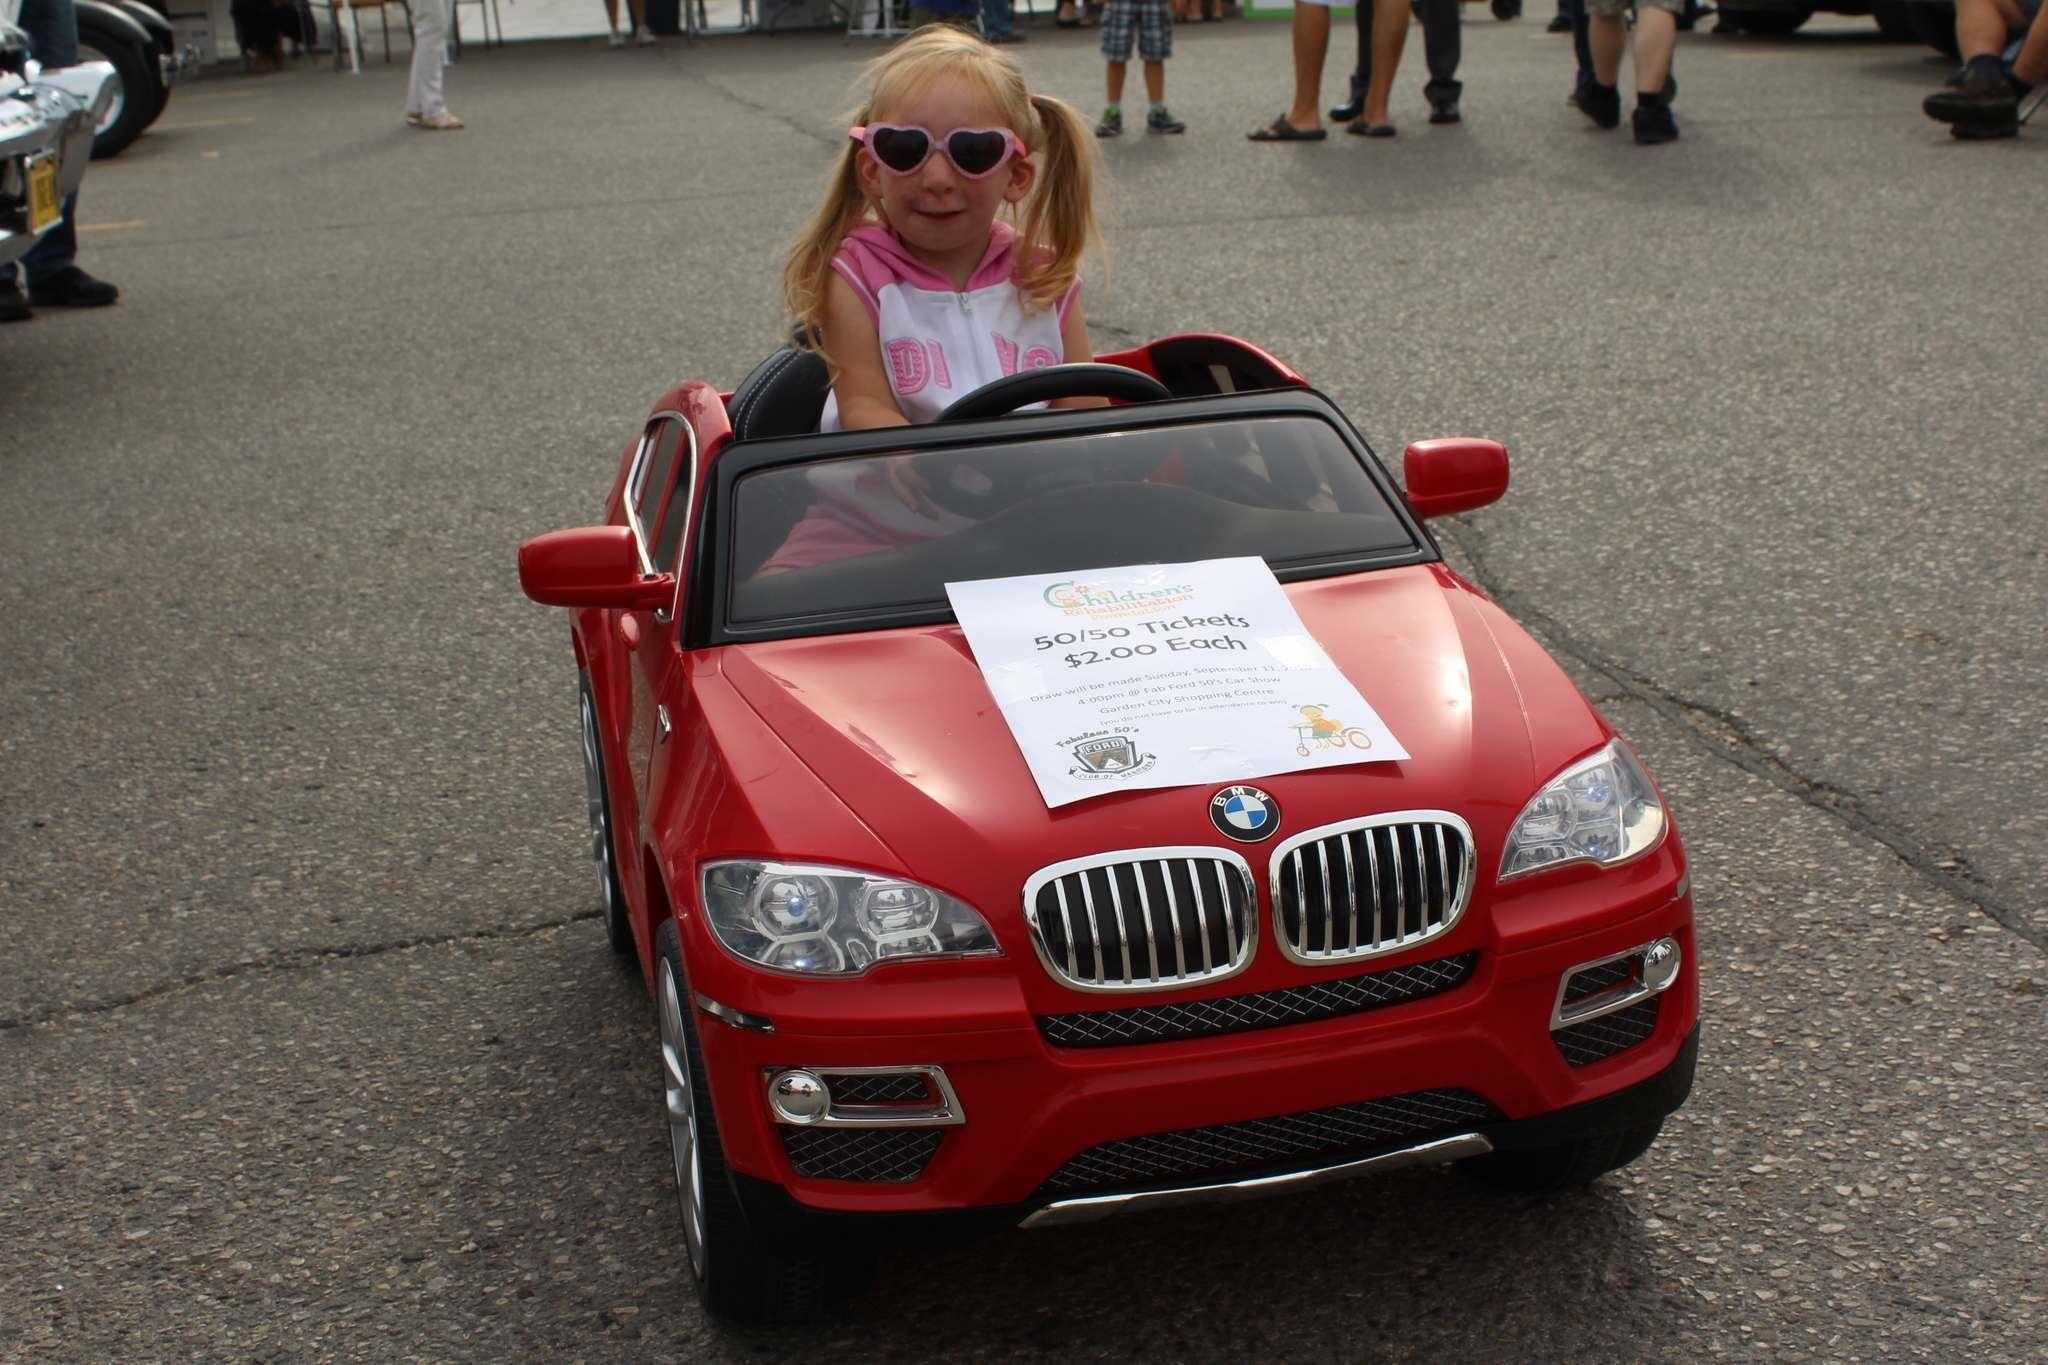 Children's Rehabilitation Foundation 2016 Child of the Year Willow Dueck enjoyed showing off her BMW convertible.